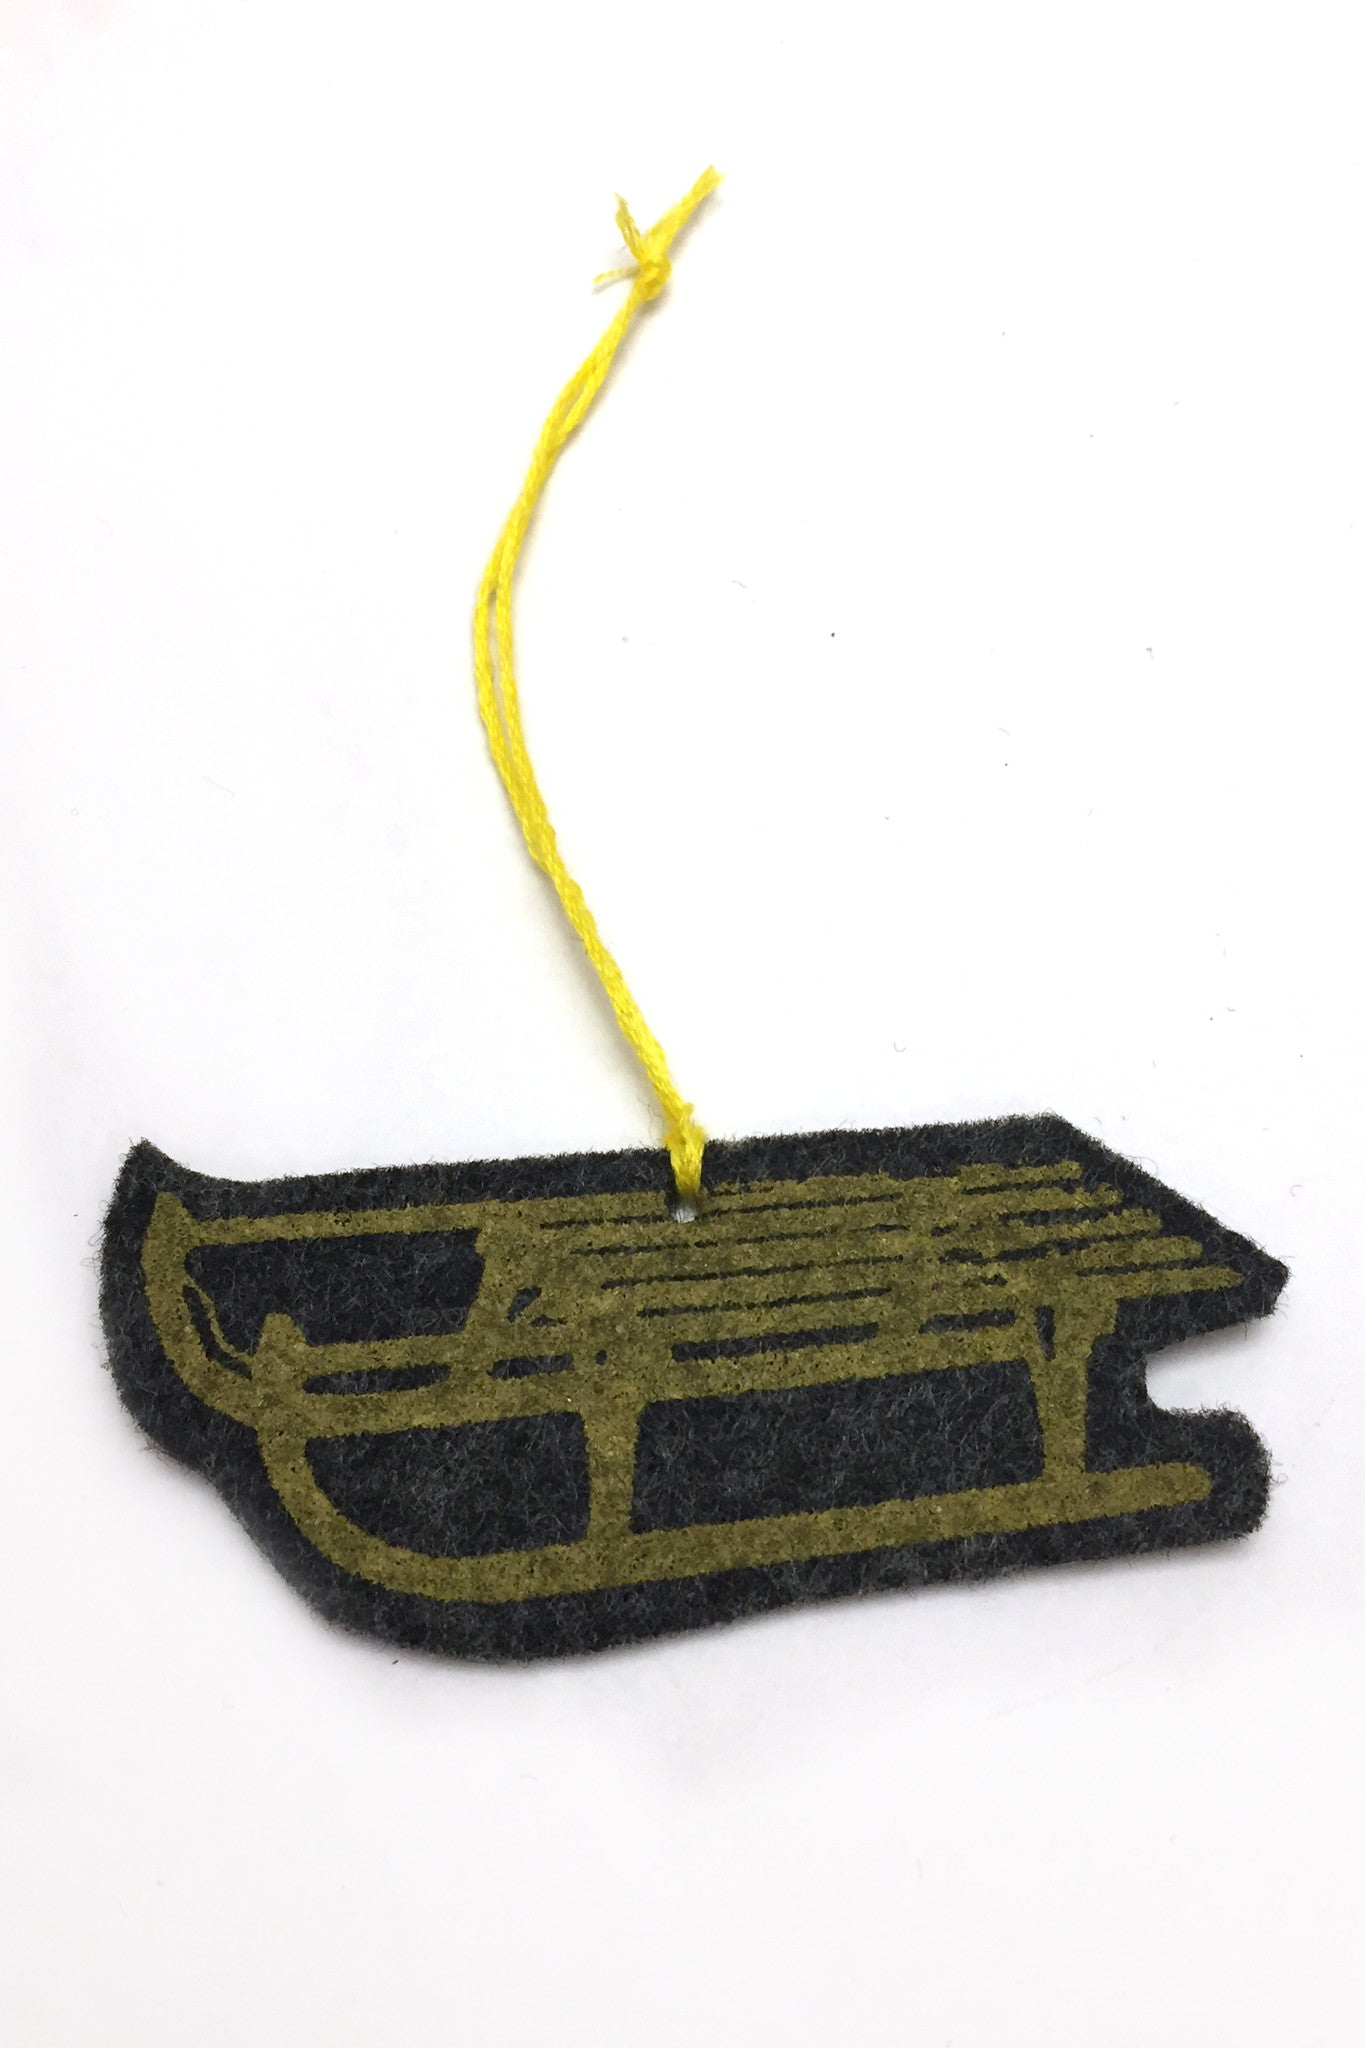 Mustard sled ornament detail